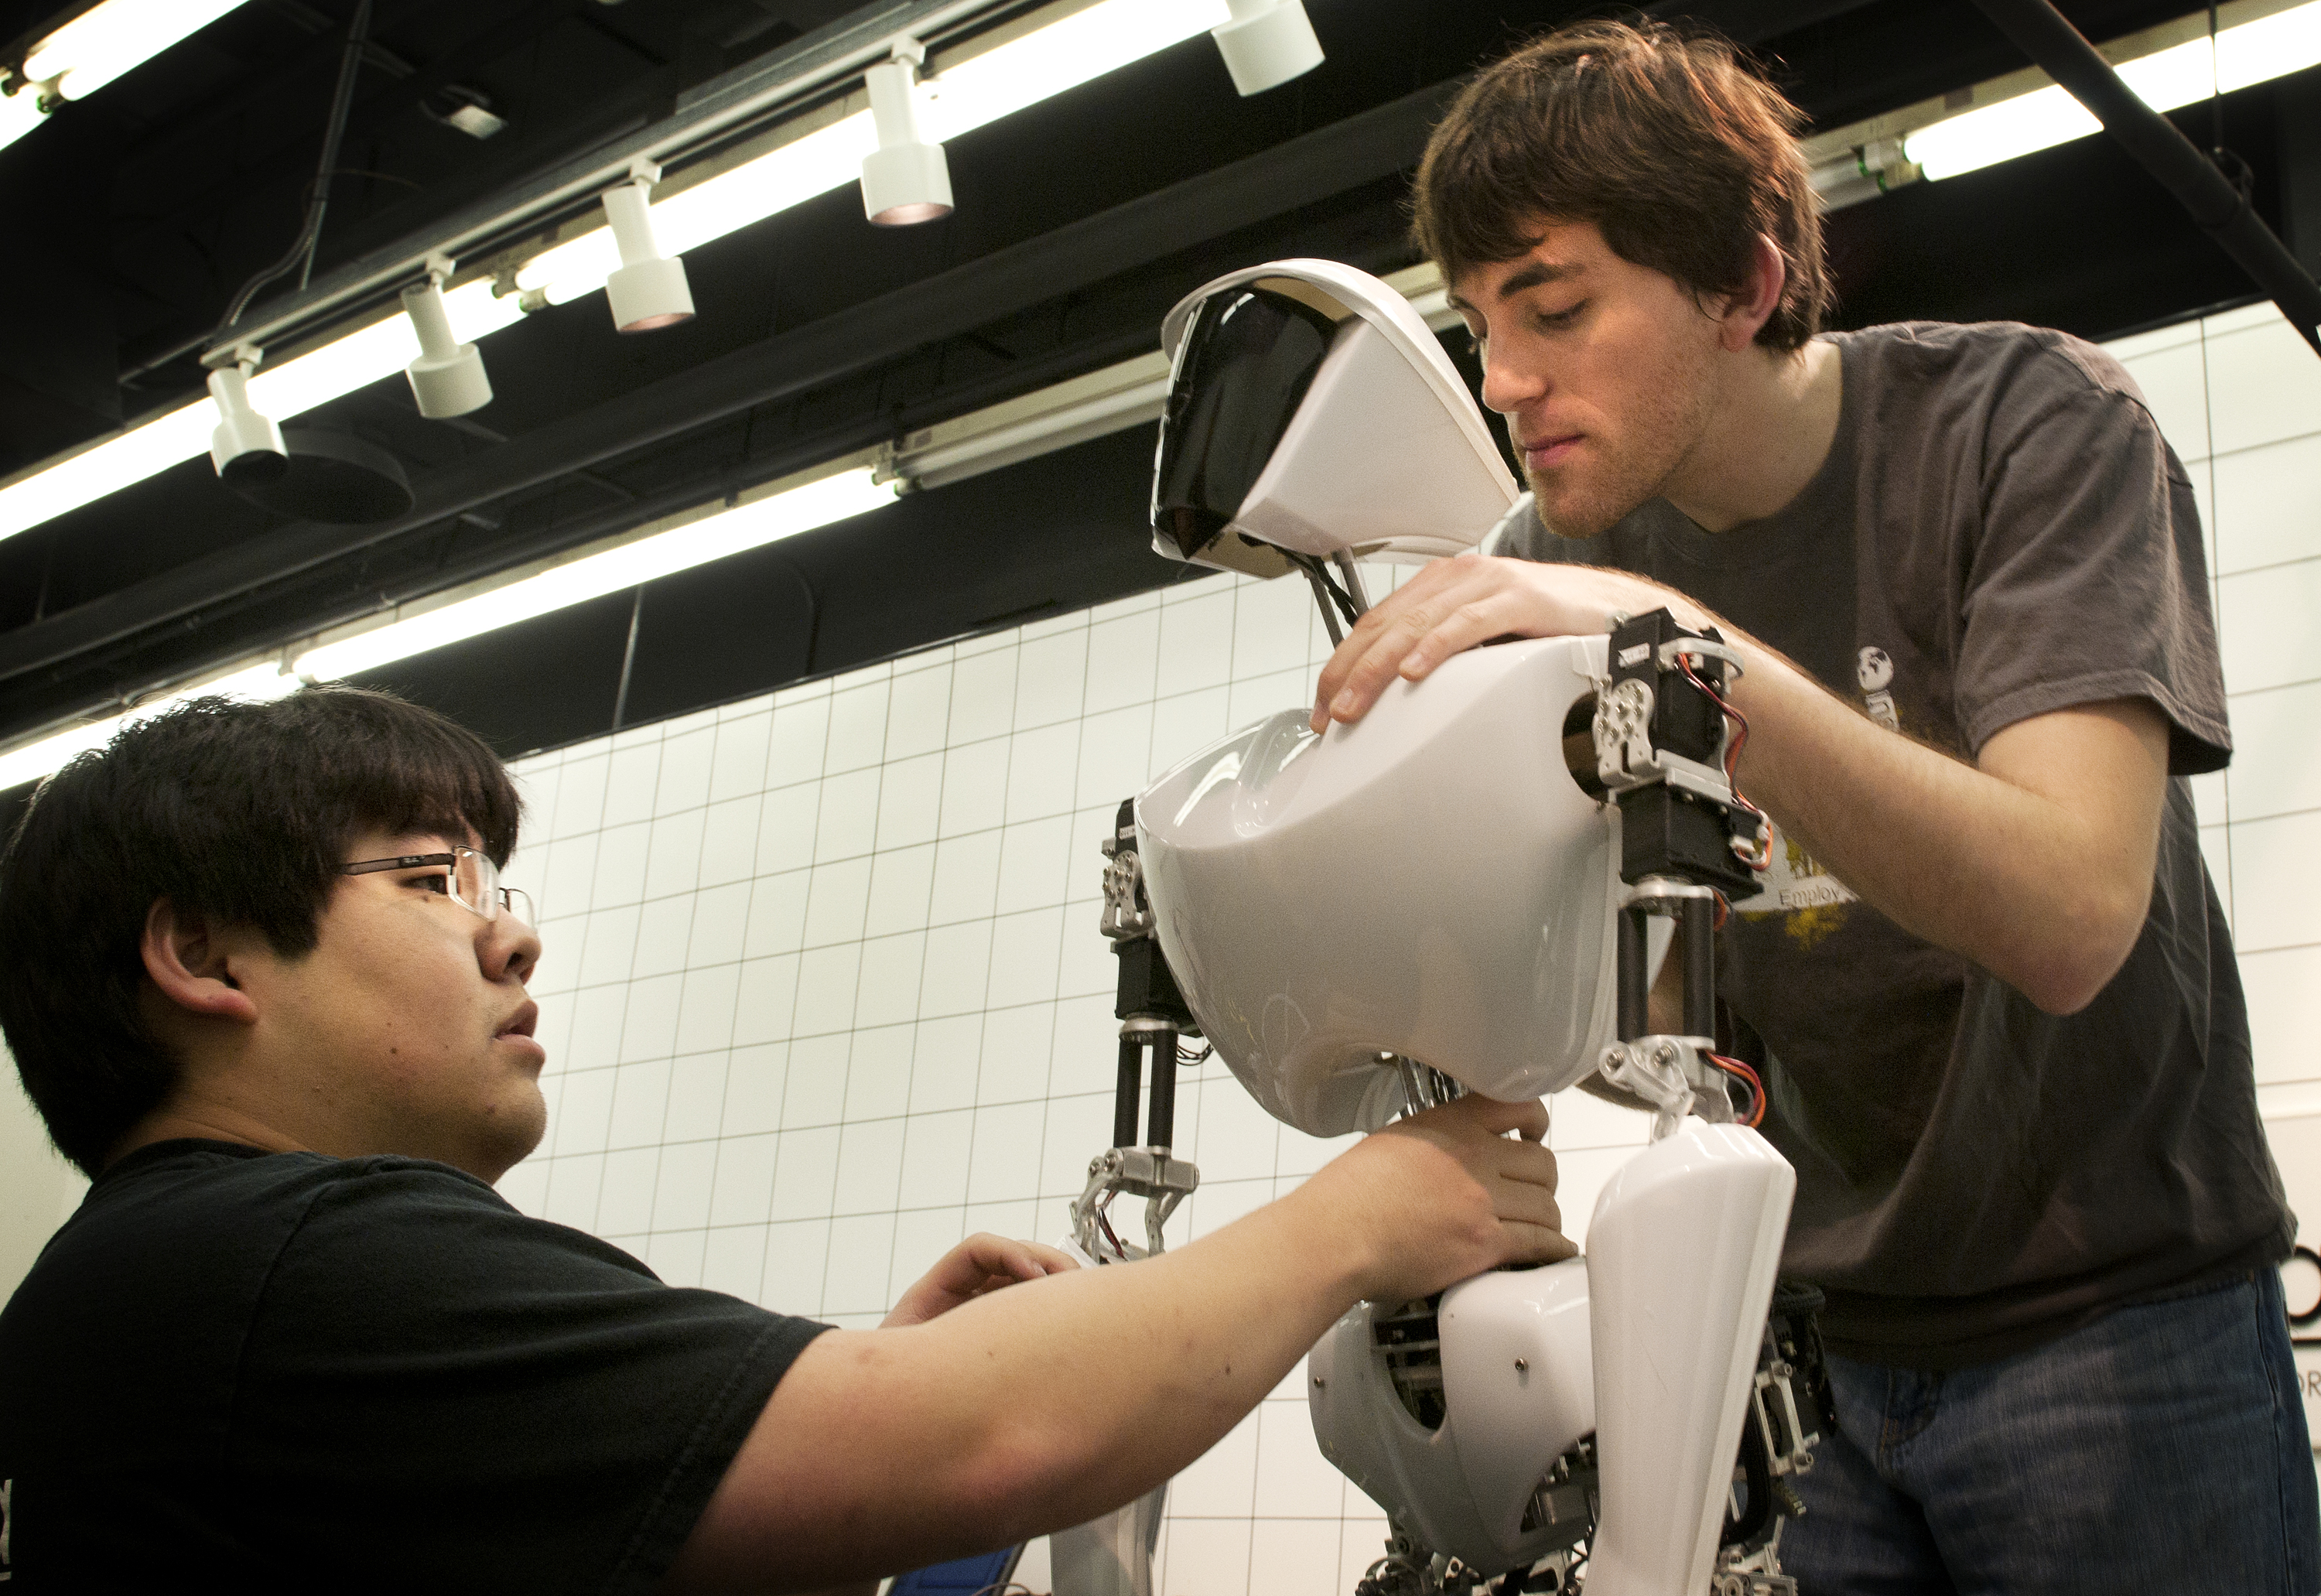 (Left to right) Mechanical engineering doctoral student Bryce Lee and mechanical engineering master's student Coleman Knabe work on CHARLI 2, a soccer-playing humanoid robot built in the Robotics and Mechanisms Laboratory, part of the College of Engineering.